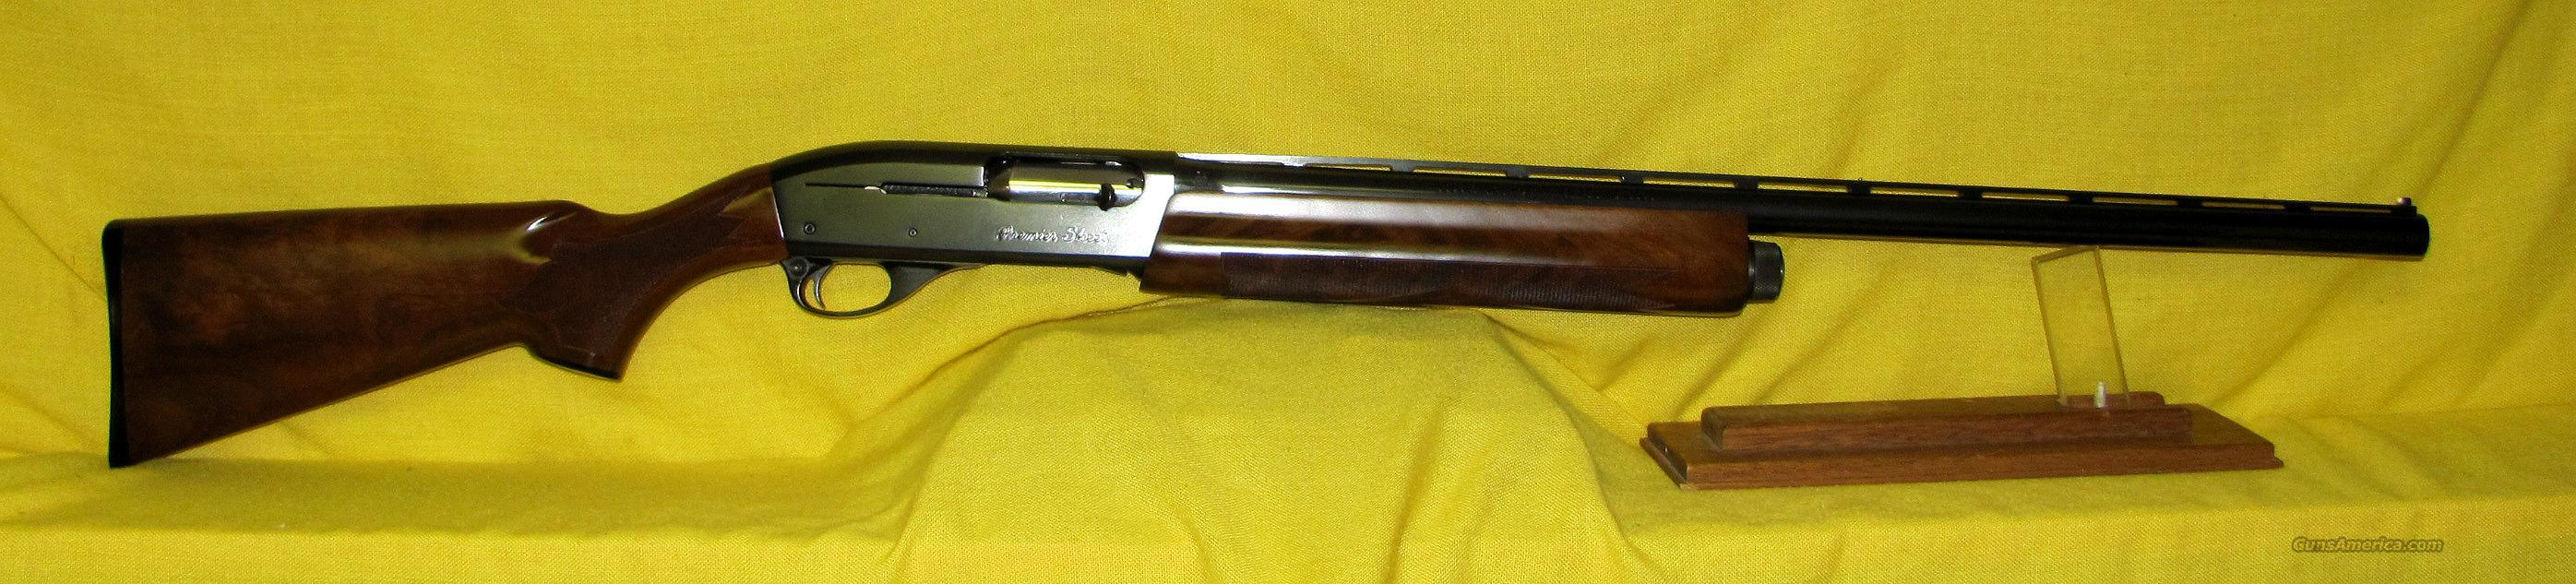 REMINGTON 11-87 PREMIER SKEET 12GA  Guns > Shotguns > Remington Shotguns  > Autoloaders > Trap/Skeet